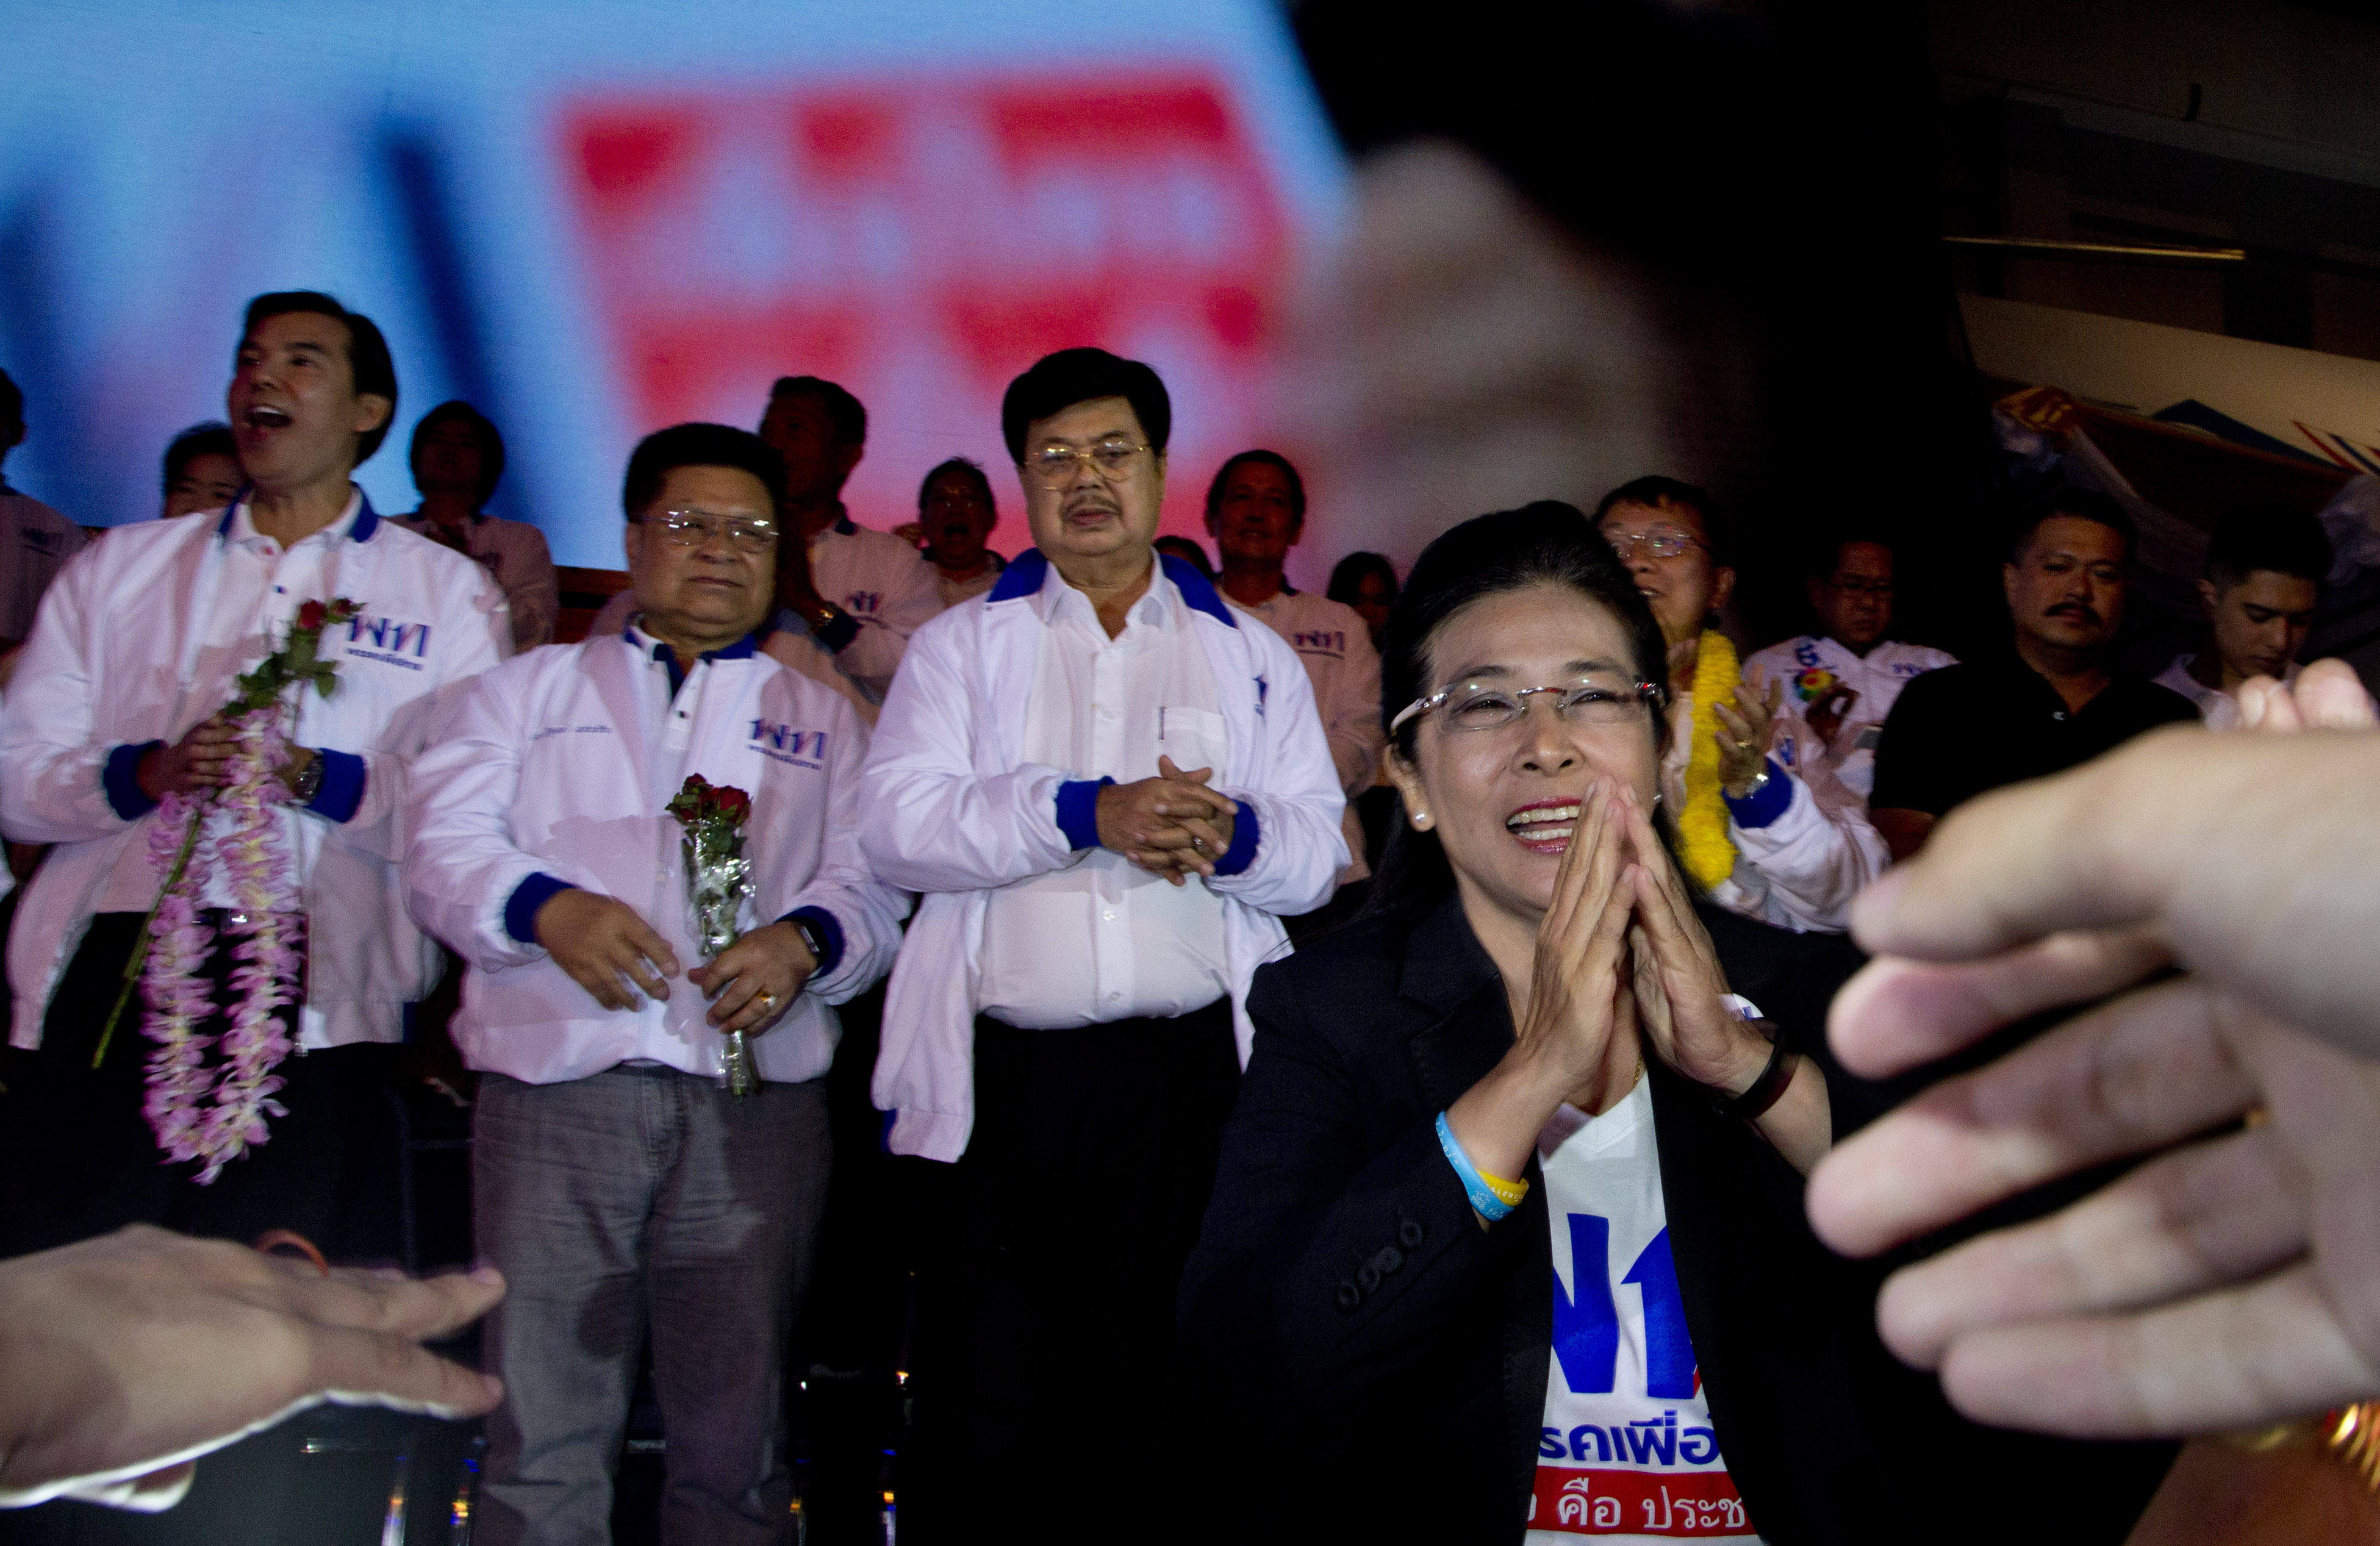 The leader of Pheu Thai Party and candidate for prime minister Sudarat Keyuraphan, right, gestures, during an election rally concluding their campaign ahead of general election in Bangkok, Thailand, Friday, March 22, 2019. The nation's first general election since the military seized power in a 2014 coup is scheduled to be held on March 24. (AP Photo/Gemunu Amarasinghe)